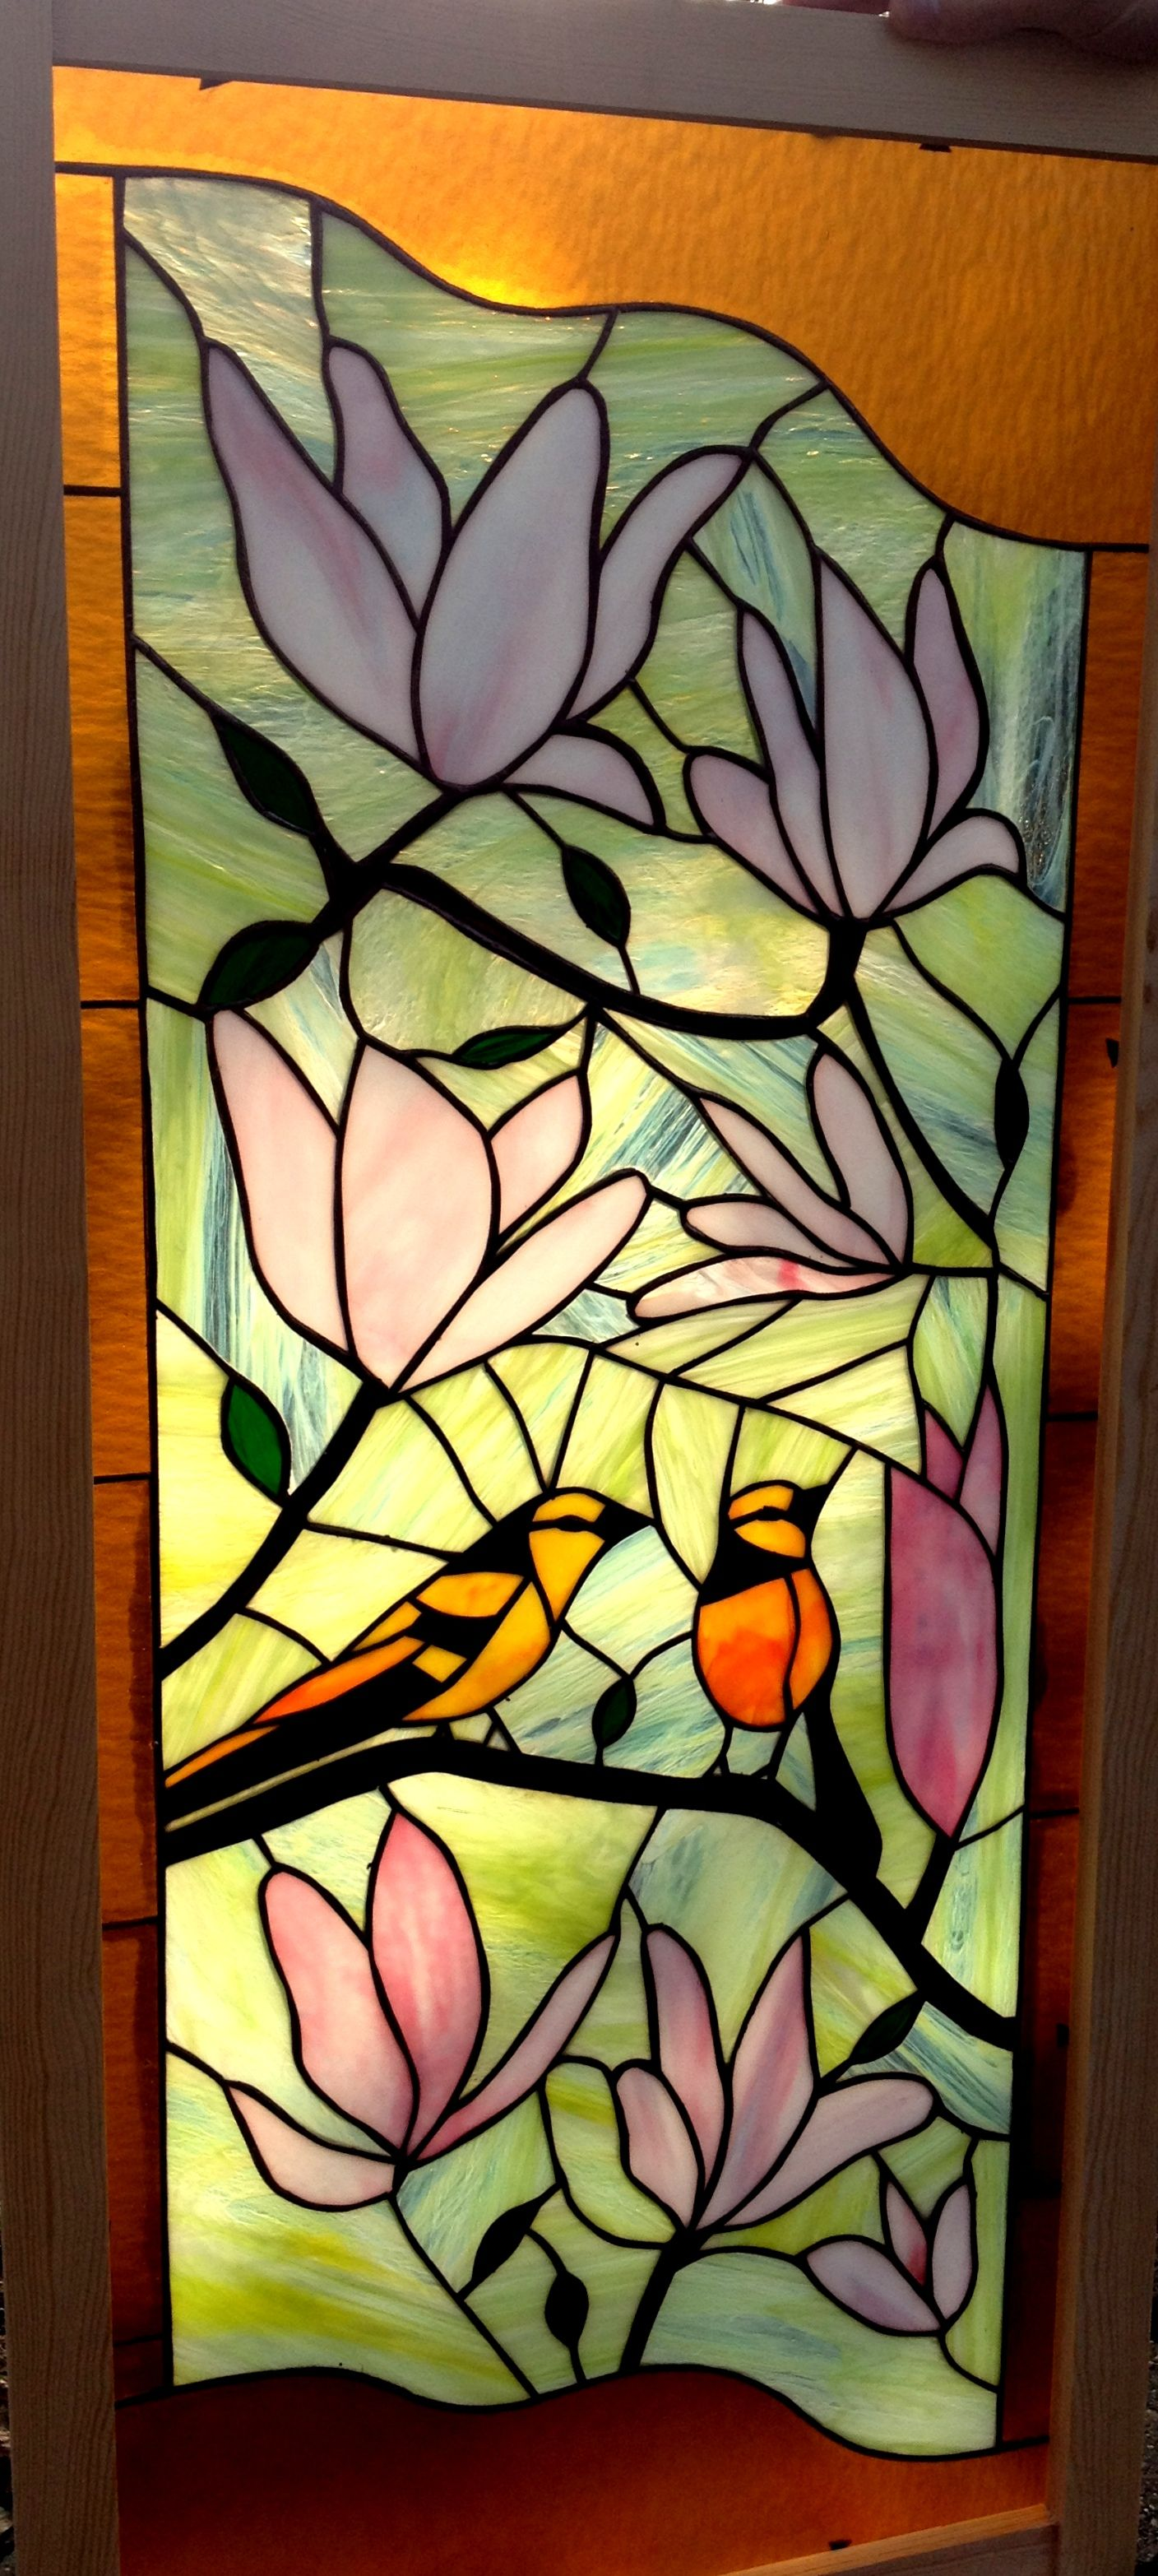 vitrales | vitrales | Pinterest | Glass, Mosaics and Stained glass ...